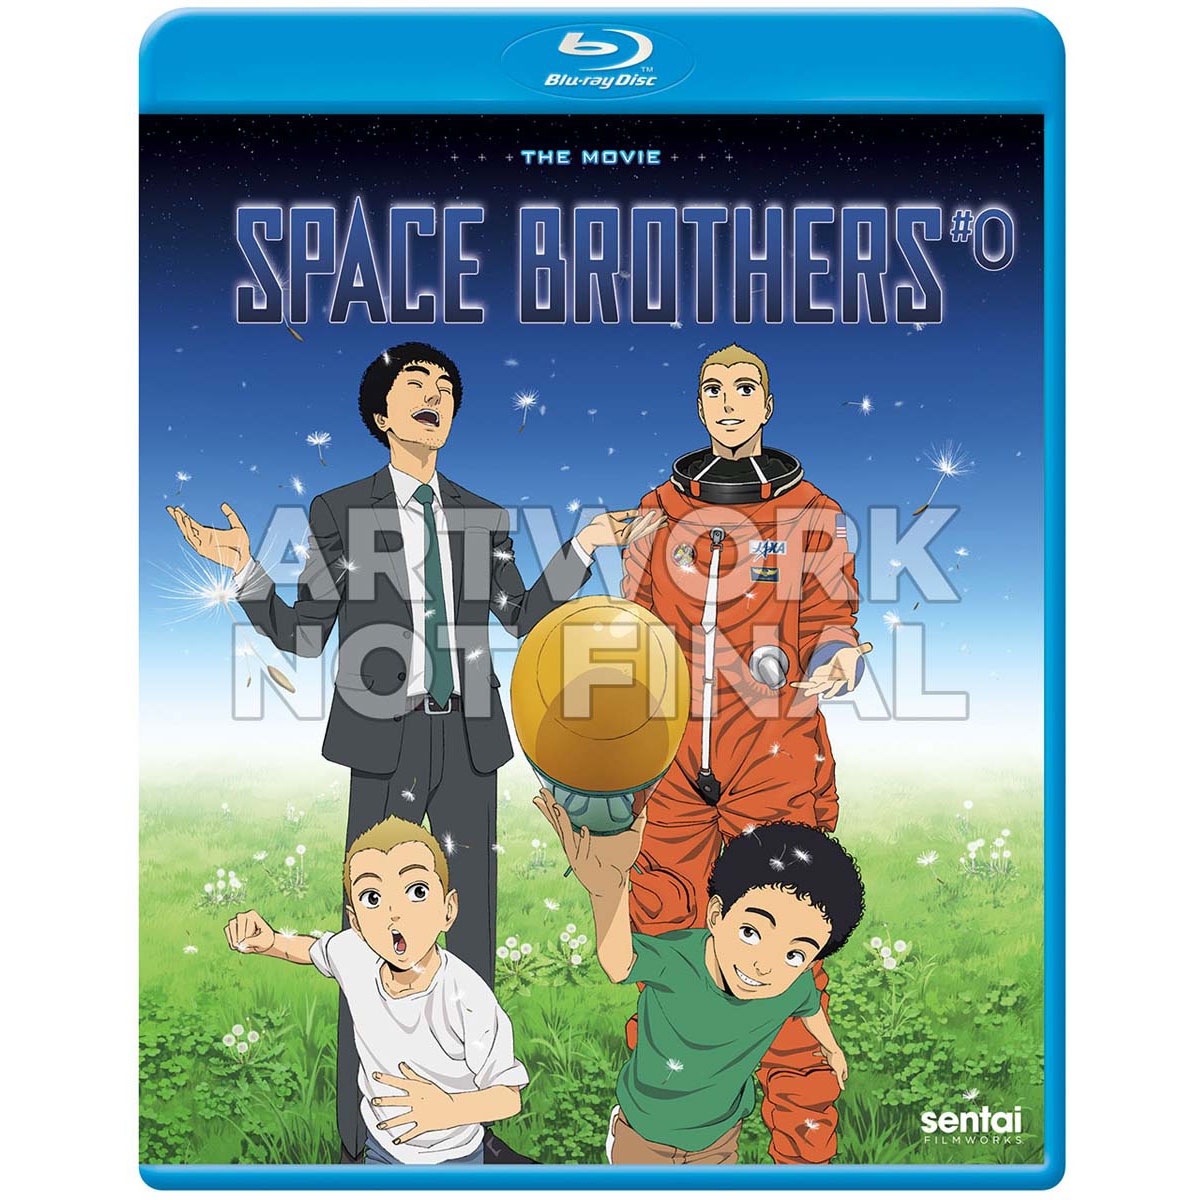 Space Brothers #0 Blu-ray